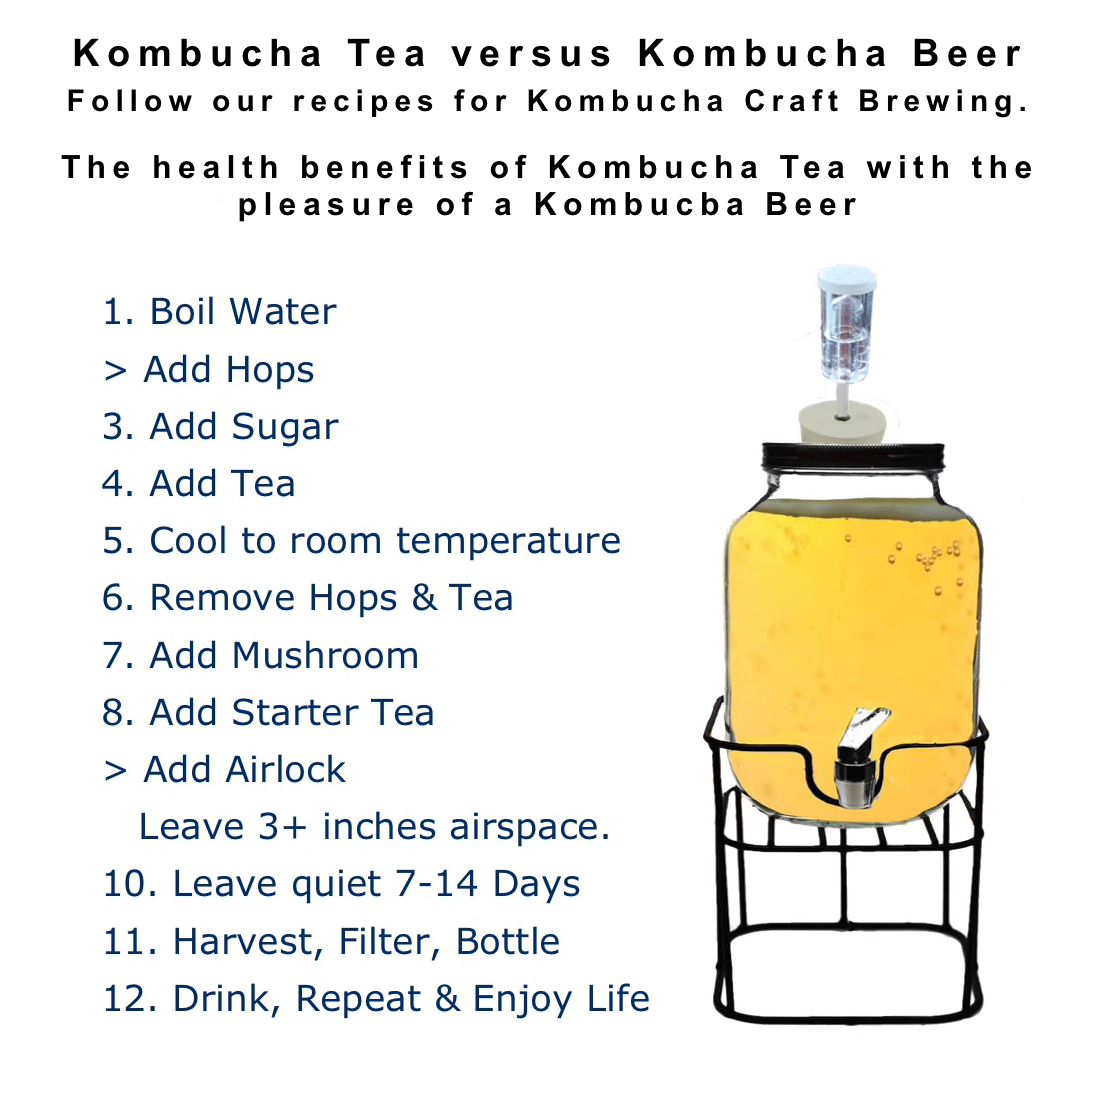 Kombucha Beer Brew Kit Complete Just Add Water How to